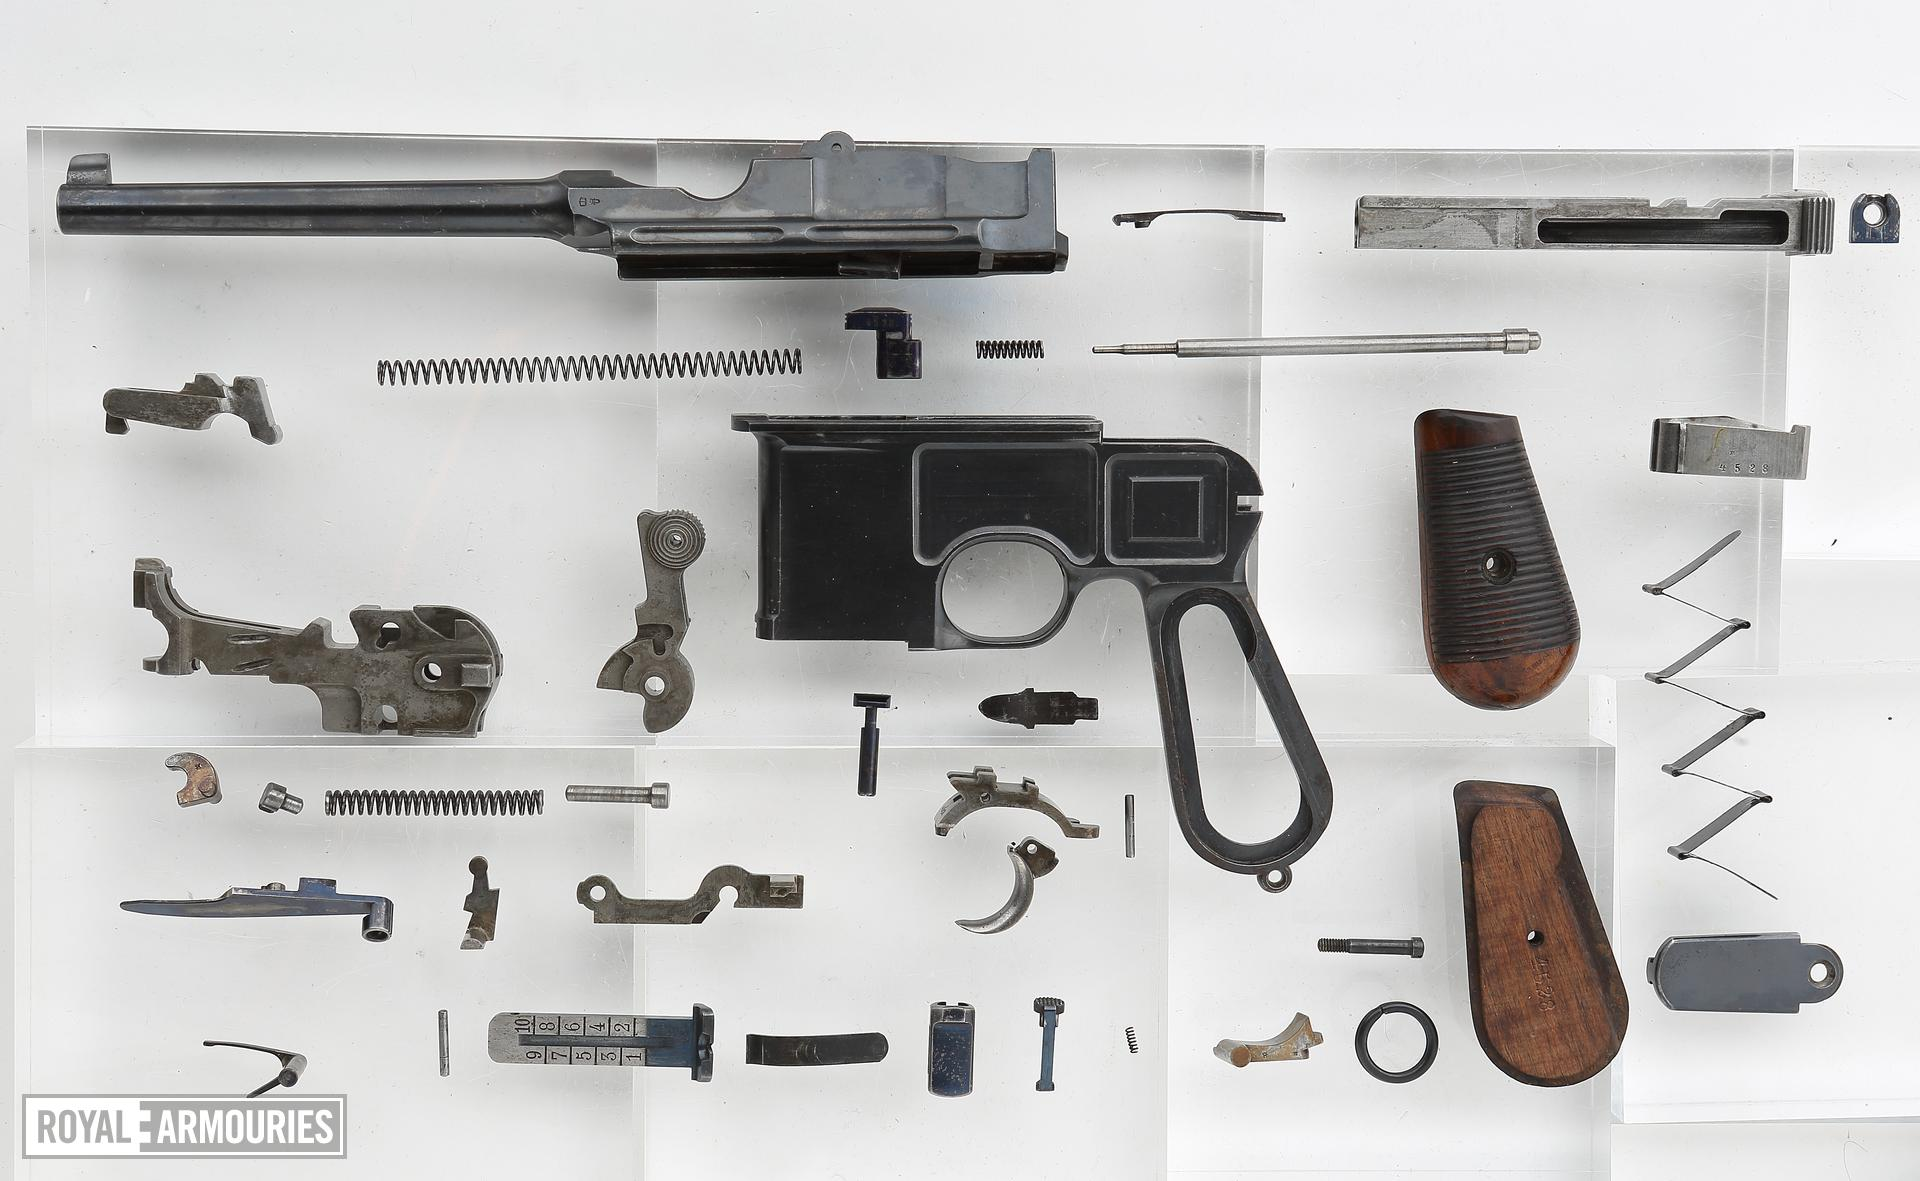 Mauser Model C96 centrefire self loading pistol with cone hammer and holster stock, Germany